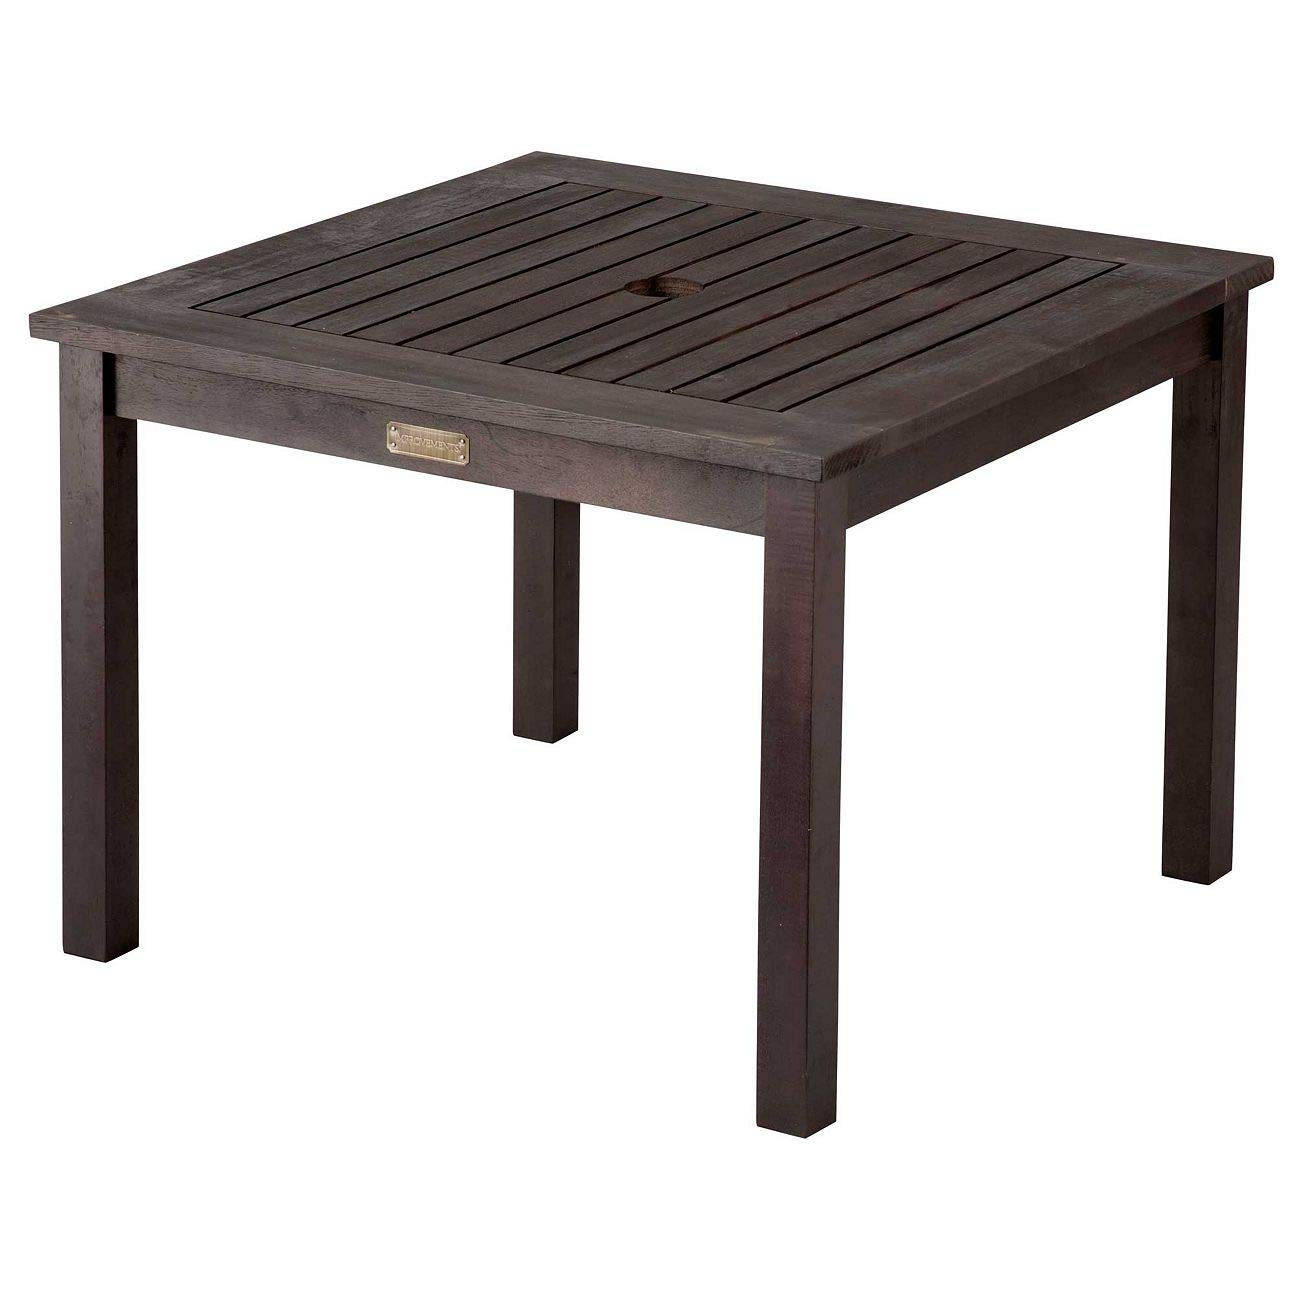 outdoor rustic espresso finish eucalyptus wood umbrella side table hole end patio pool furniture garden home goods tables industrial corner legs curio cabinet target room decor